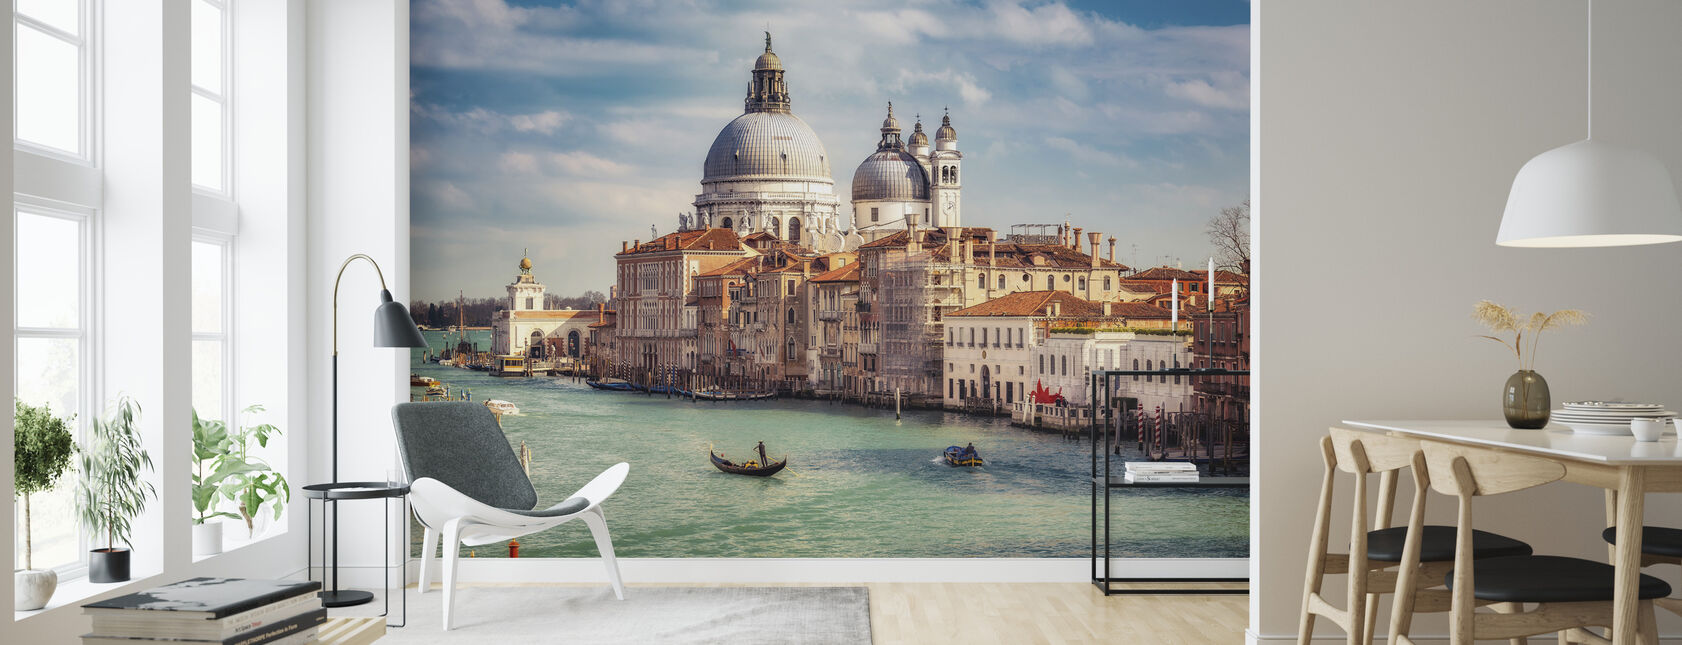 Basilica Santa Maria della Salute in Venice - Wallpaper - Living Room